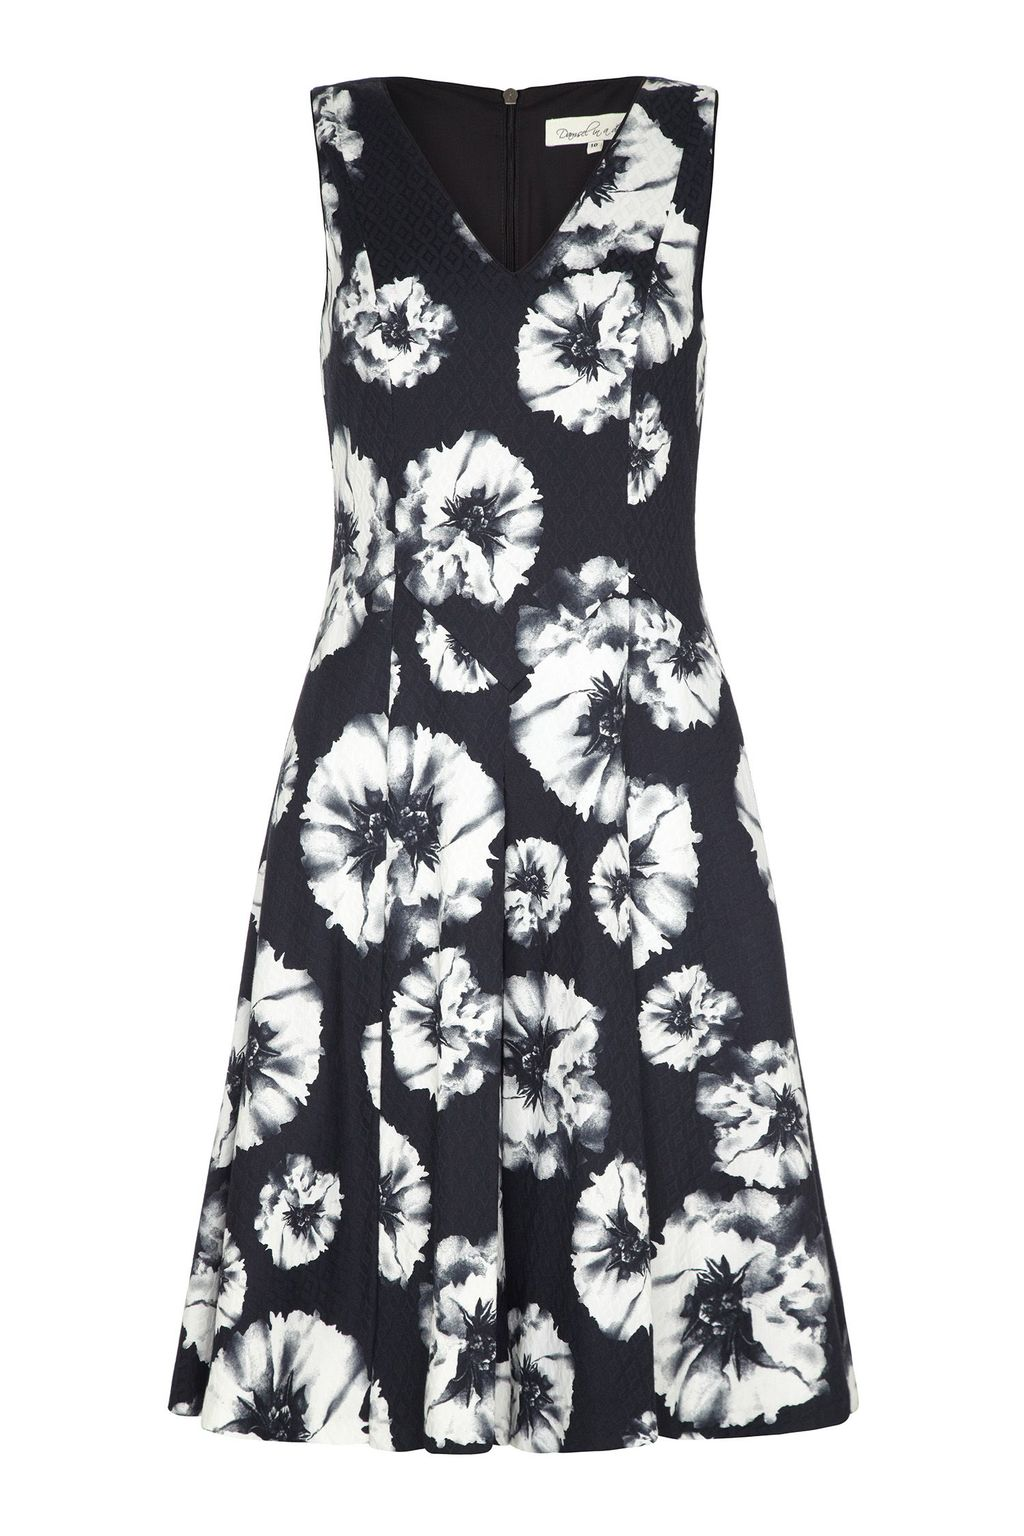 Reflections Dress, Black - neckline: v-neck; sleeve style: sleeveless; secondary colour: white; predominant colour: navy; occasions: evening, occasion; length: just above the knee; fit: fitted at waist & bust; style: fit & flare; fibres: cotton - stretch; hip detail: subtle/flattering hip detail; sleeve length: sleeveless; pattern type: fabric; pattern size: standard; pattern: florals; texture group: woven light midweight; trends: exotic blooms; season: s/s 2015; wardrobe: event